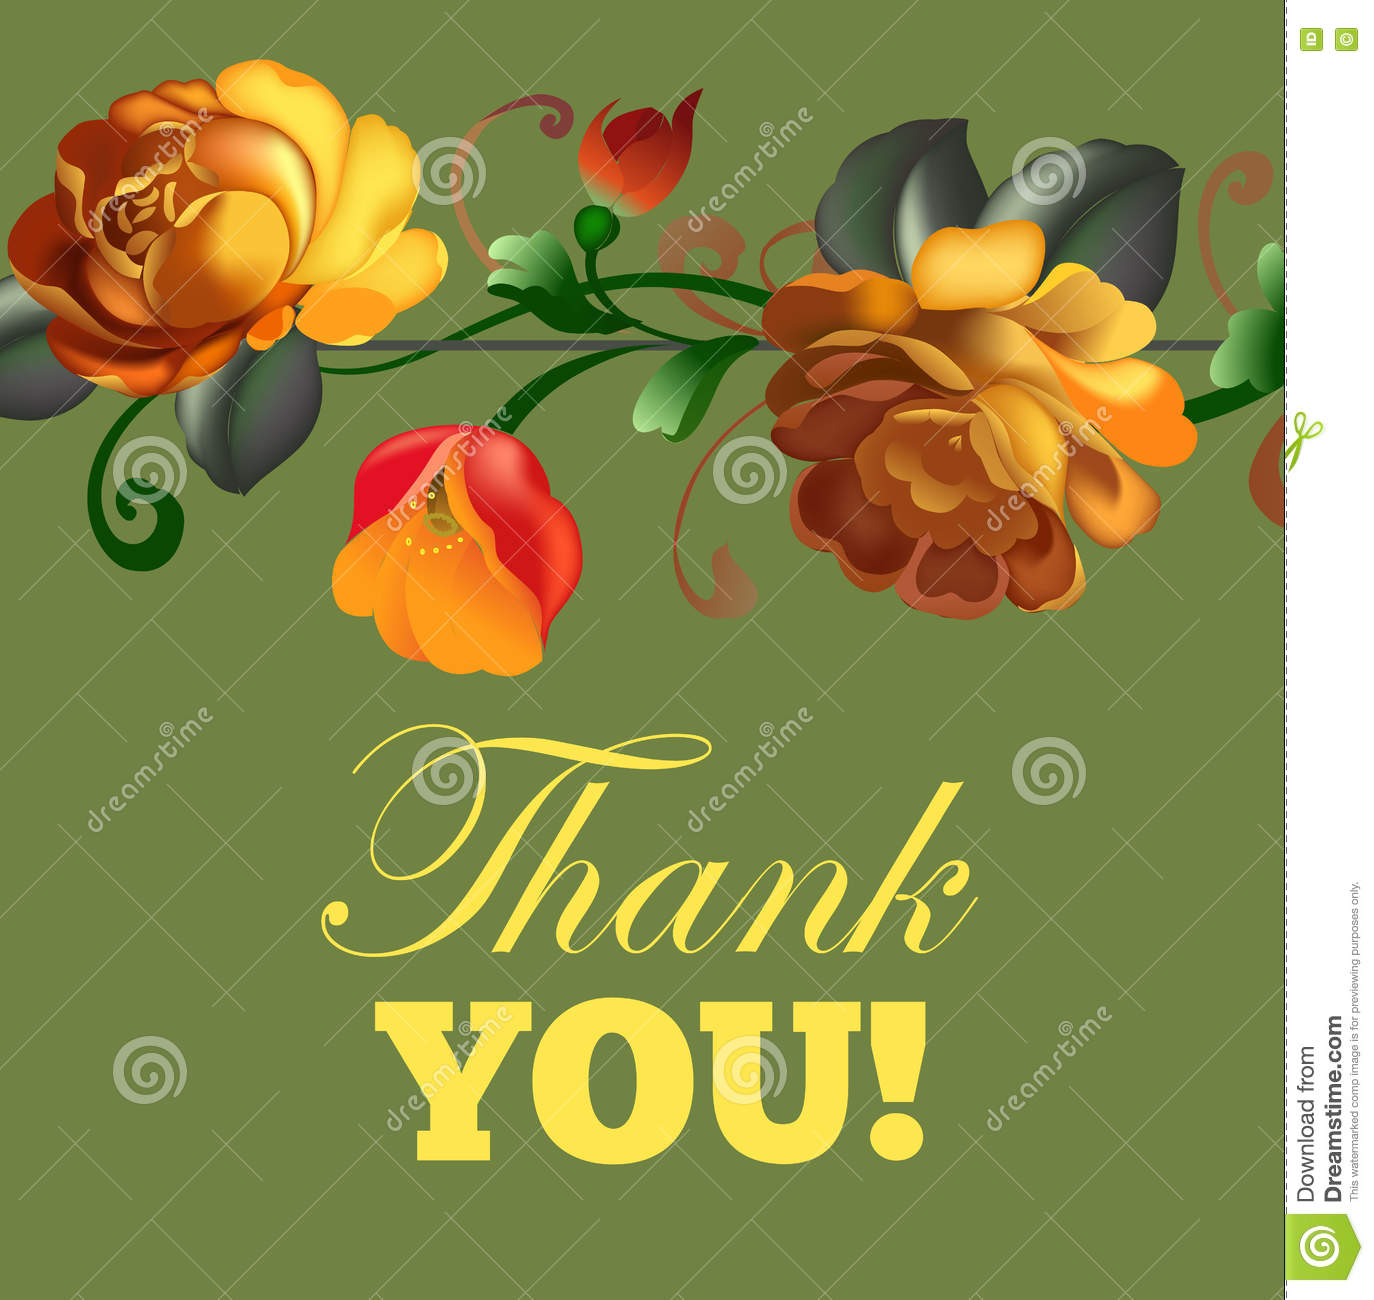 Beautiful Flower Thank You: 'Thank You' Card With Beautiful Vintage Flowers Stock